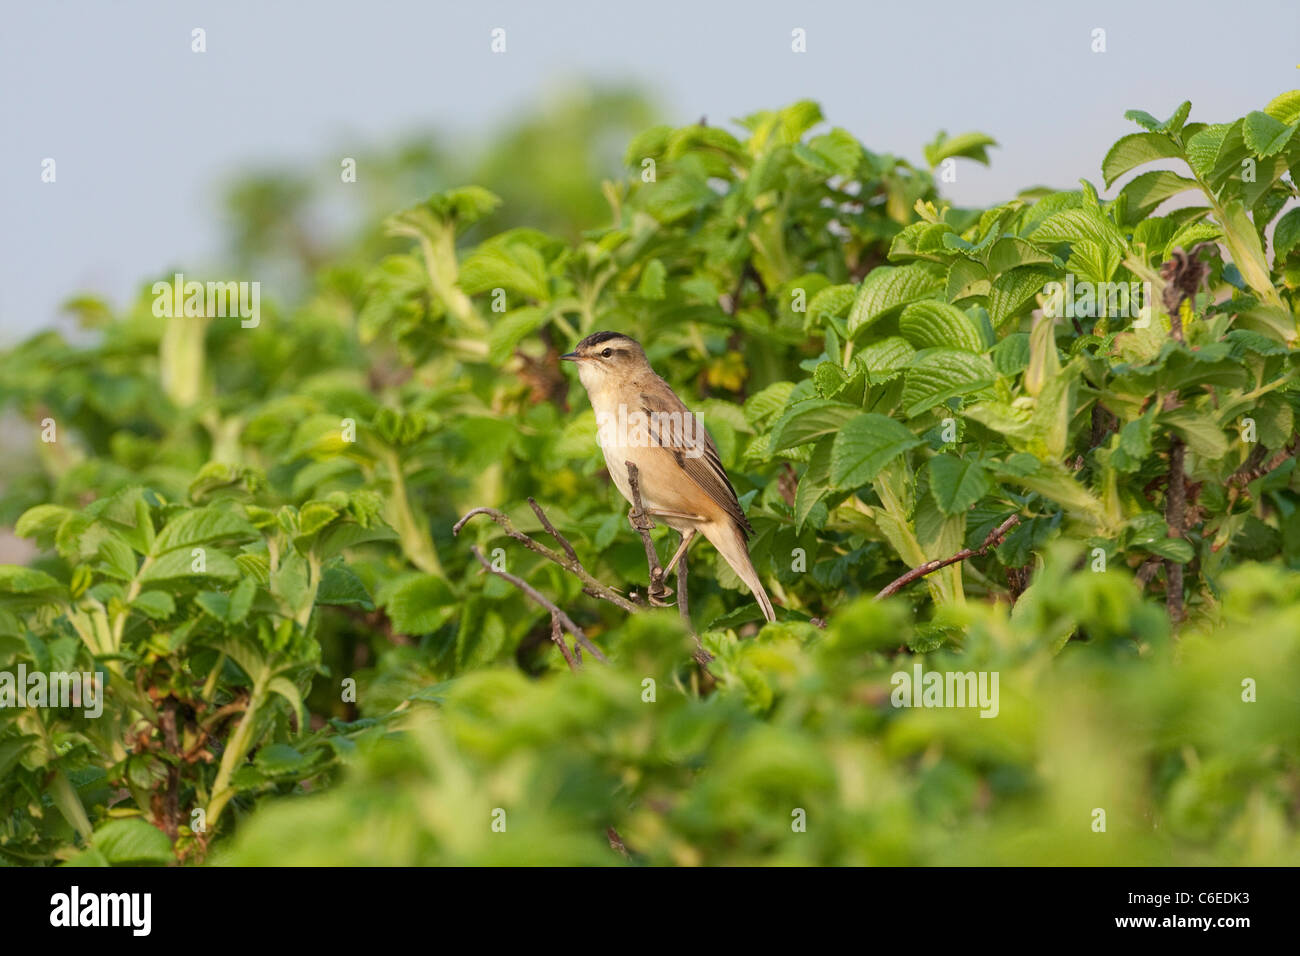 Sedge Warbler in foliage summer visitor - Stock Image